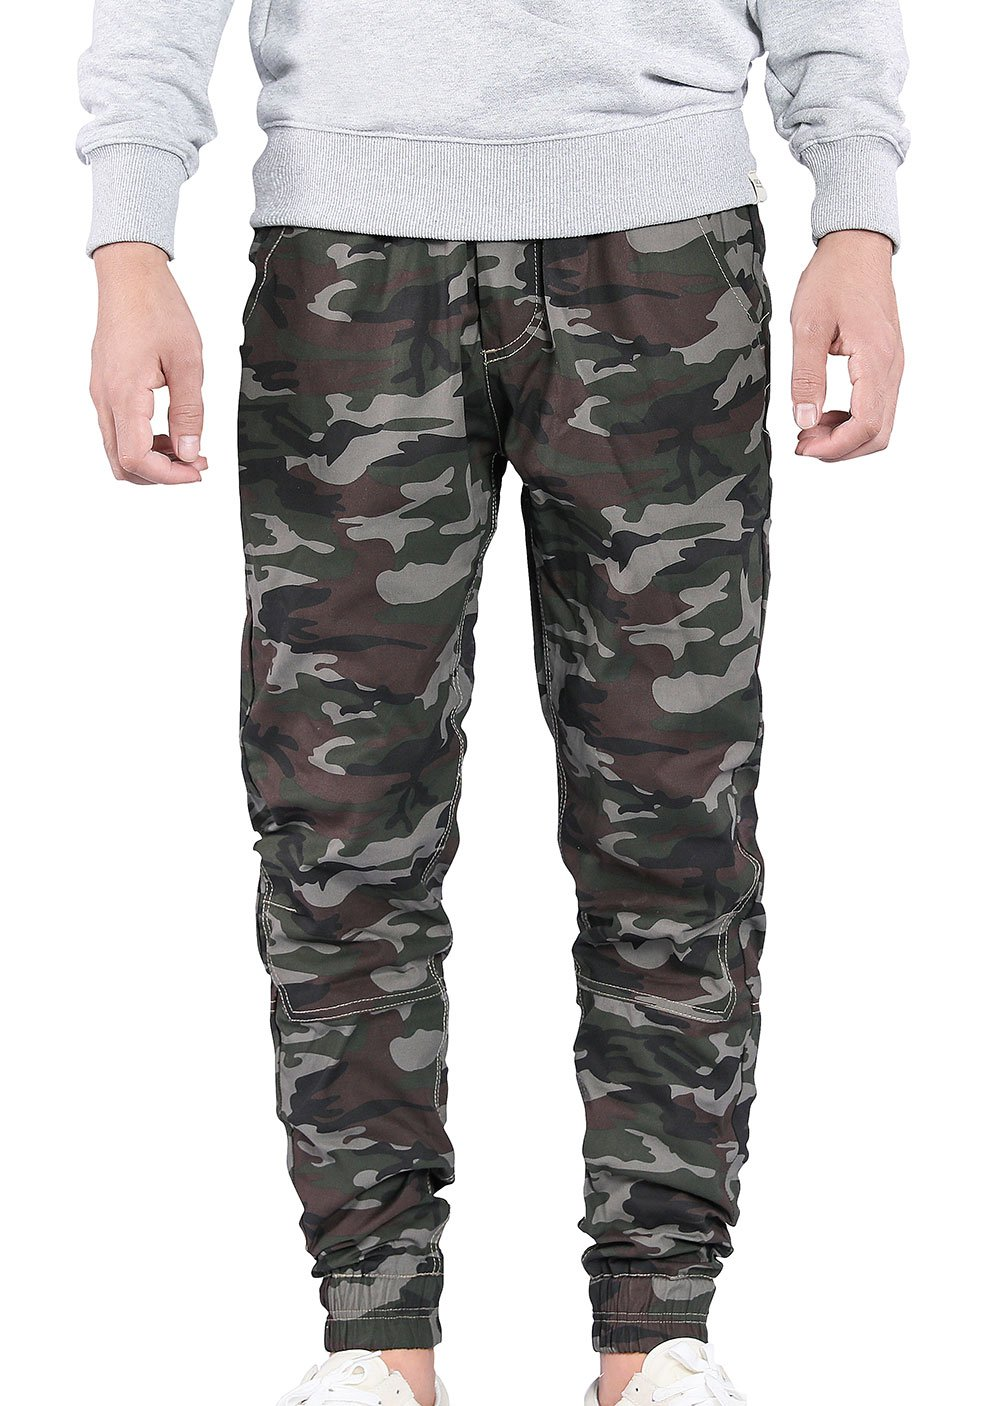 JINXUAN Men's Sports Joggers Pants Gym Workout Pant Running Trousers with Pockets